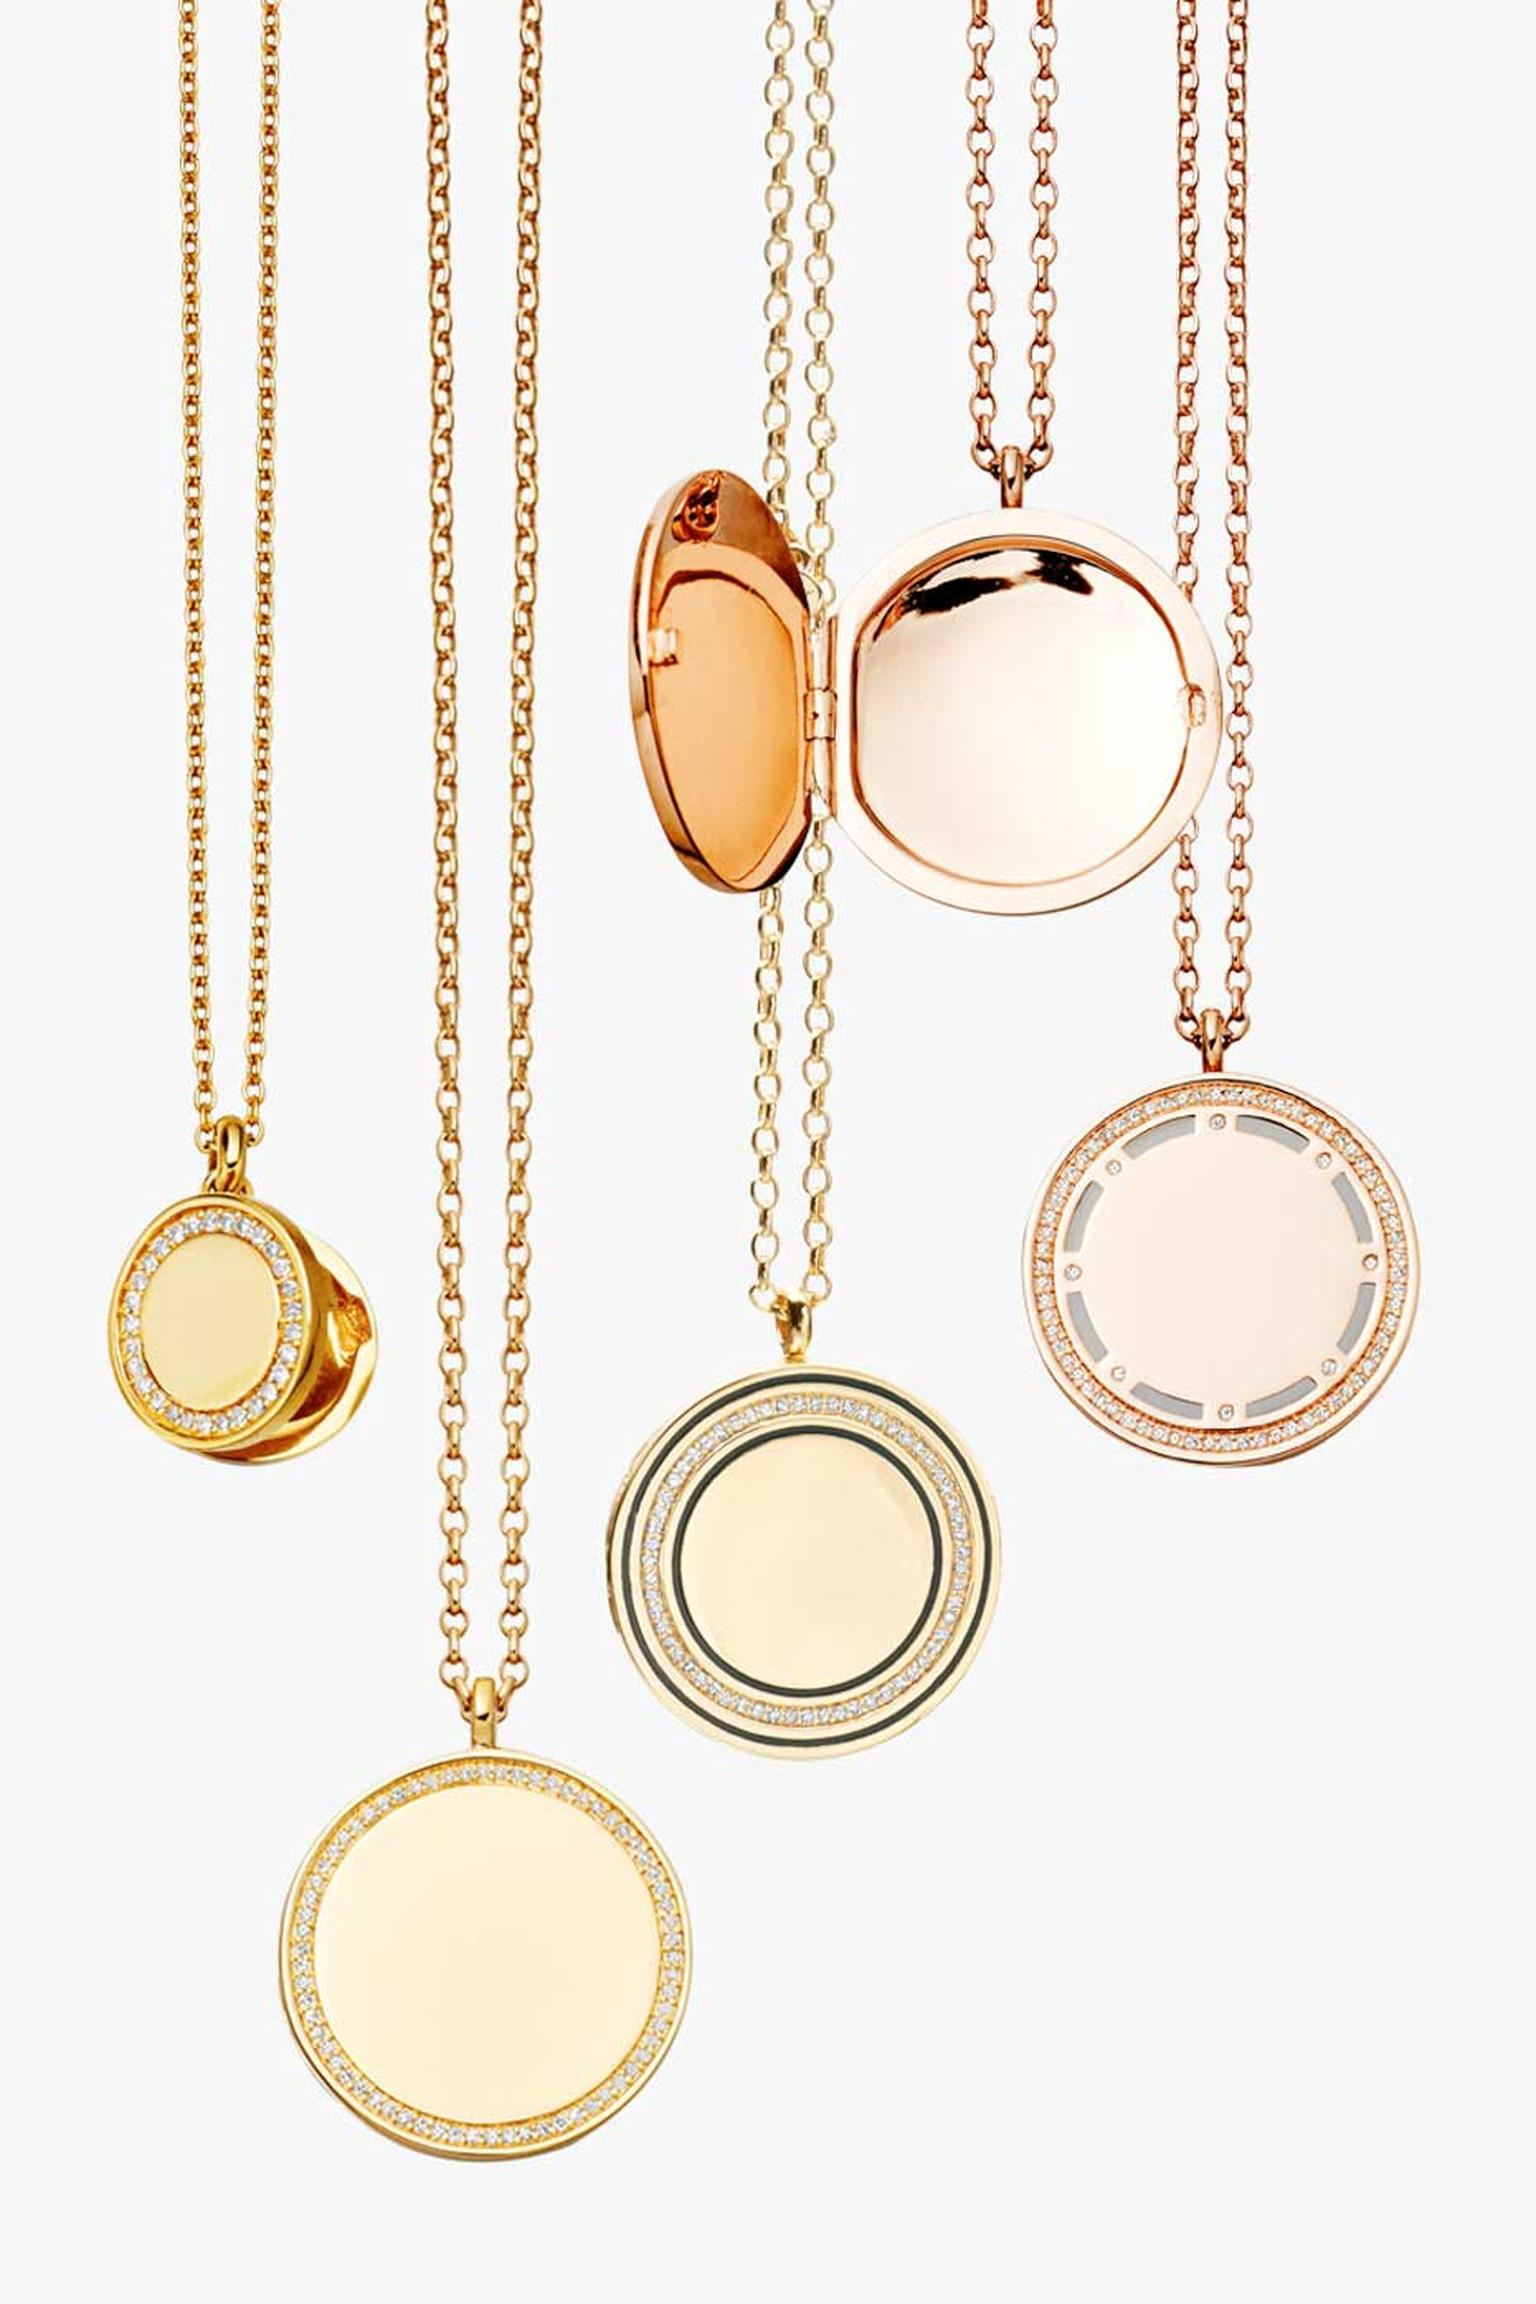 Designed in-house at the Astley Clarke London Design Studio, their newest collection of Cosmos lockets feature either rose or yellow gold, with diamonds and hand enamelling. The collection also includes rings and small pendants which all add the perfect t